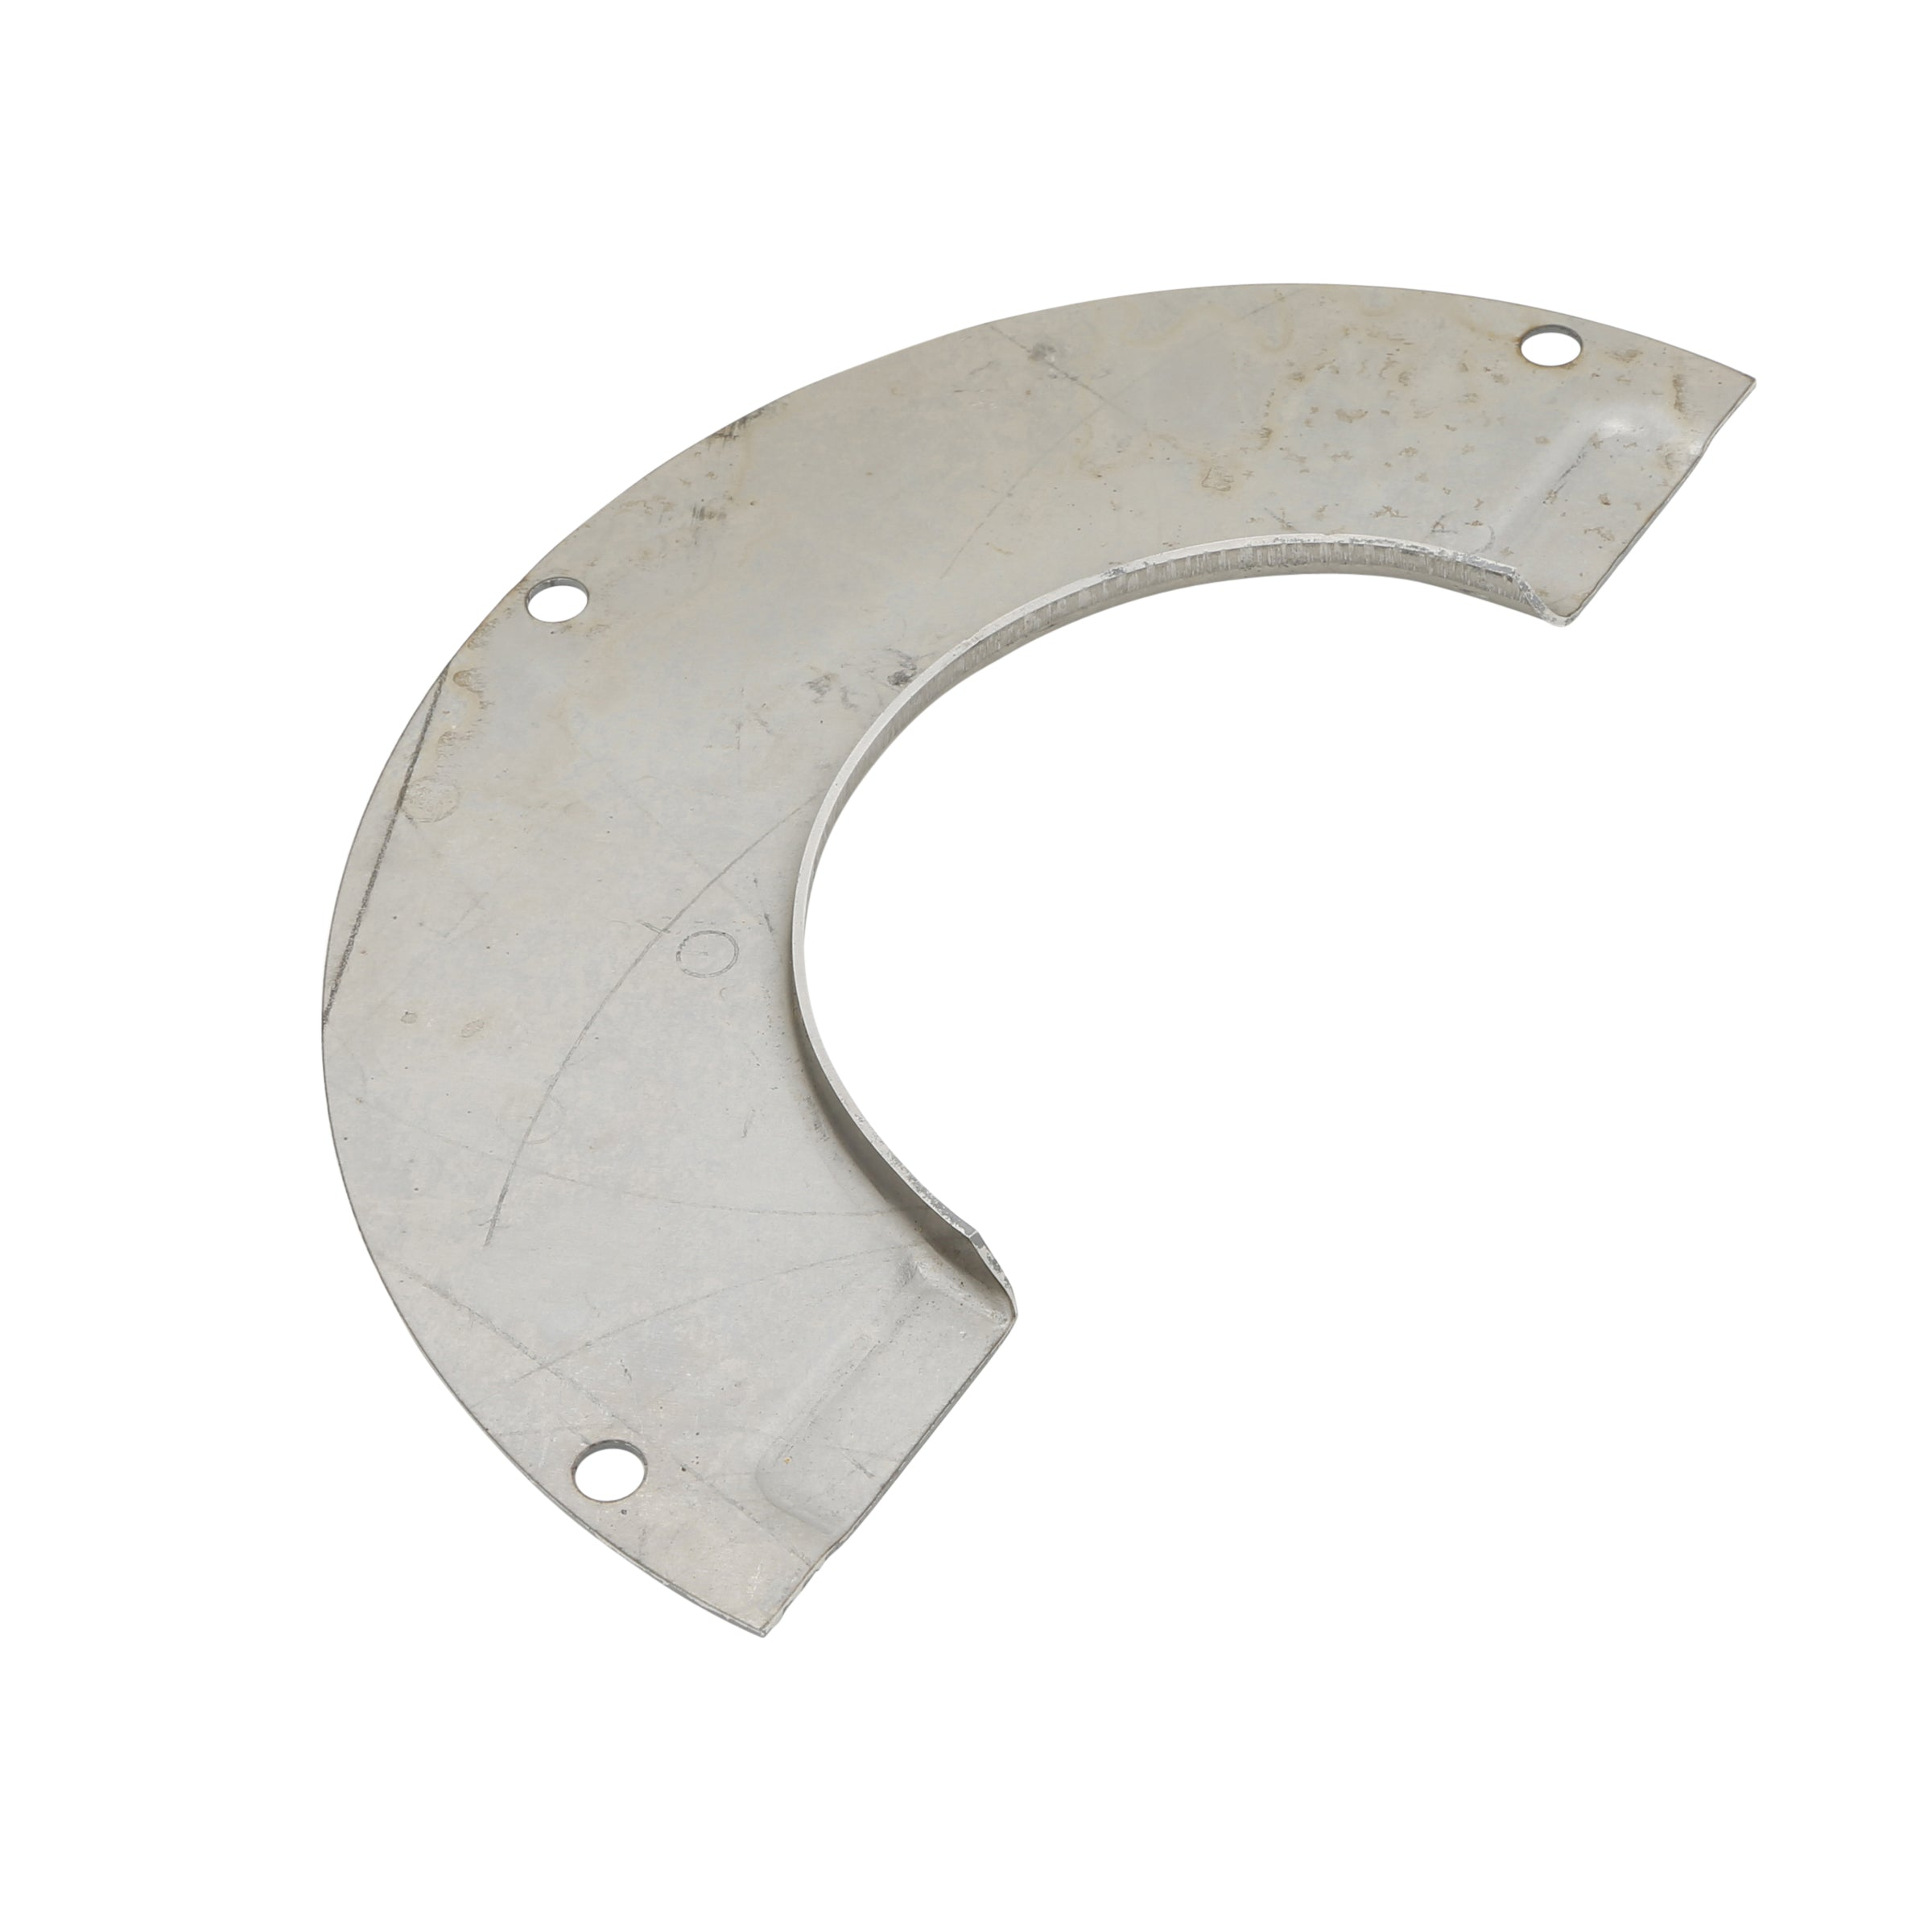 Flywheel Housing Shield Inspection Plate